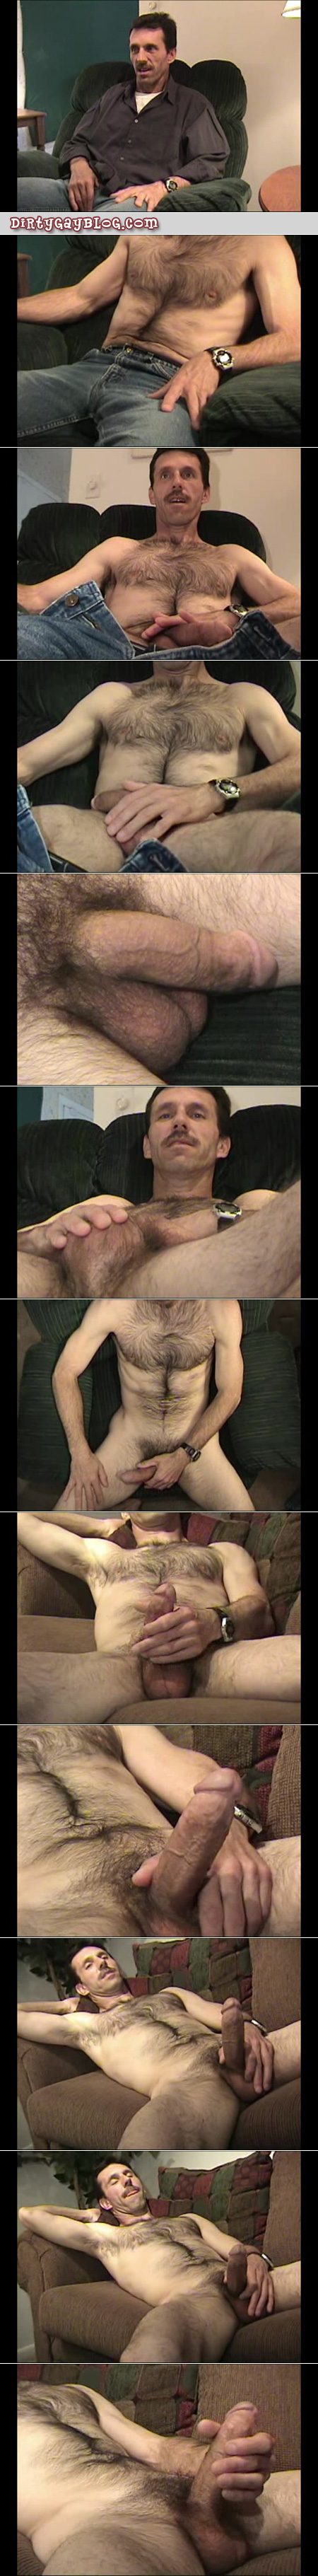 Very hairy older straight man masturbating his big dick on the couch.